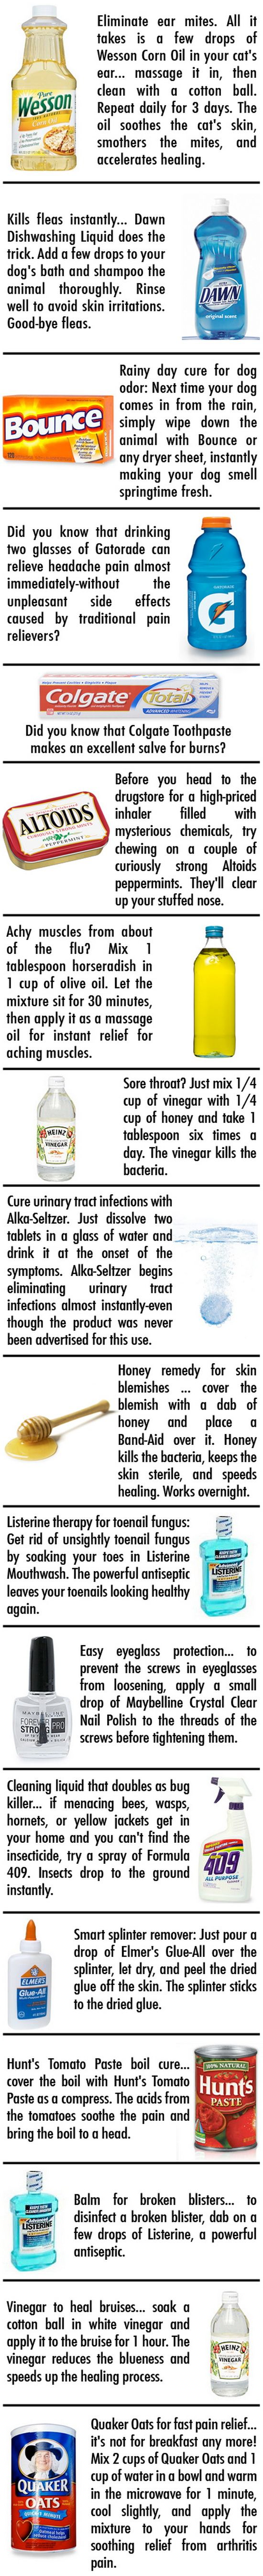 How To Make Homemade Remedy Cures with Common Household Products